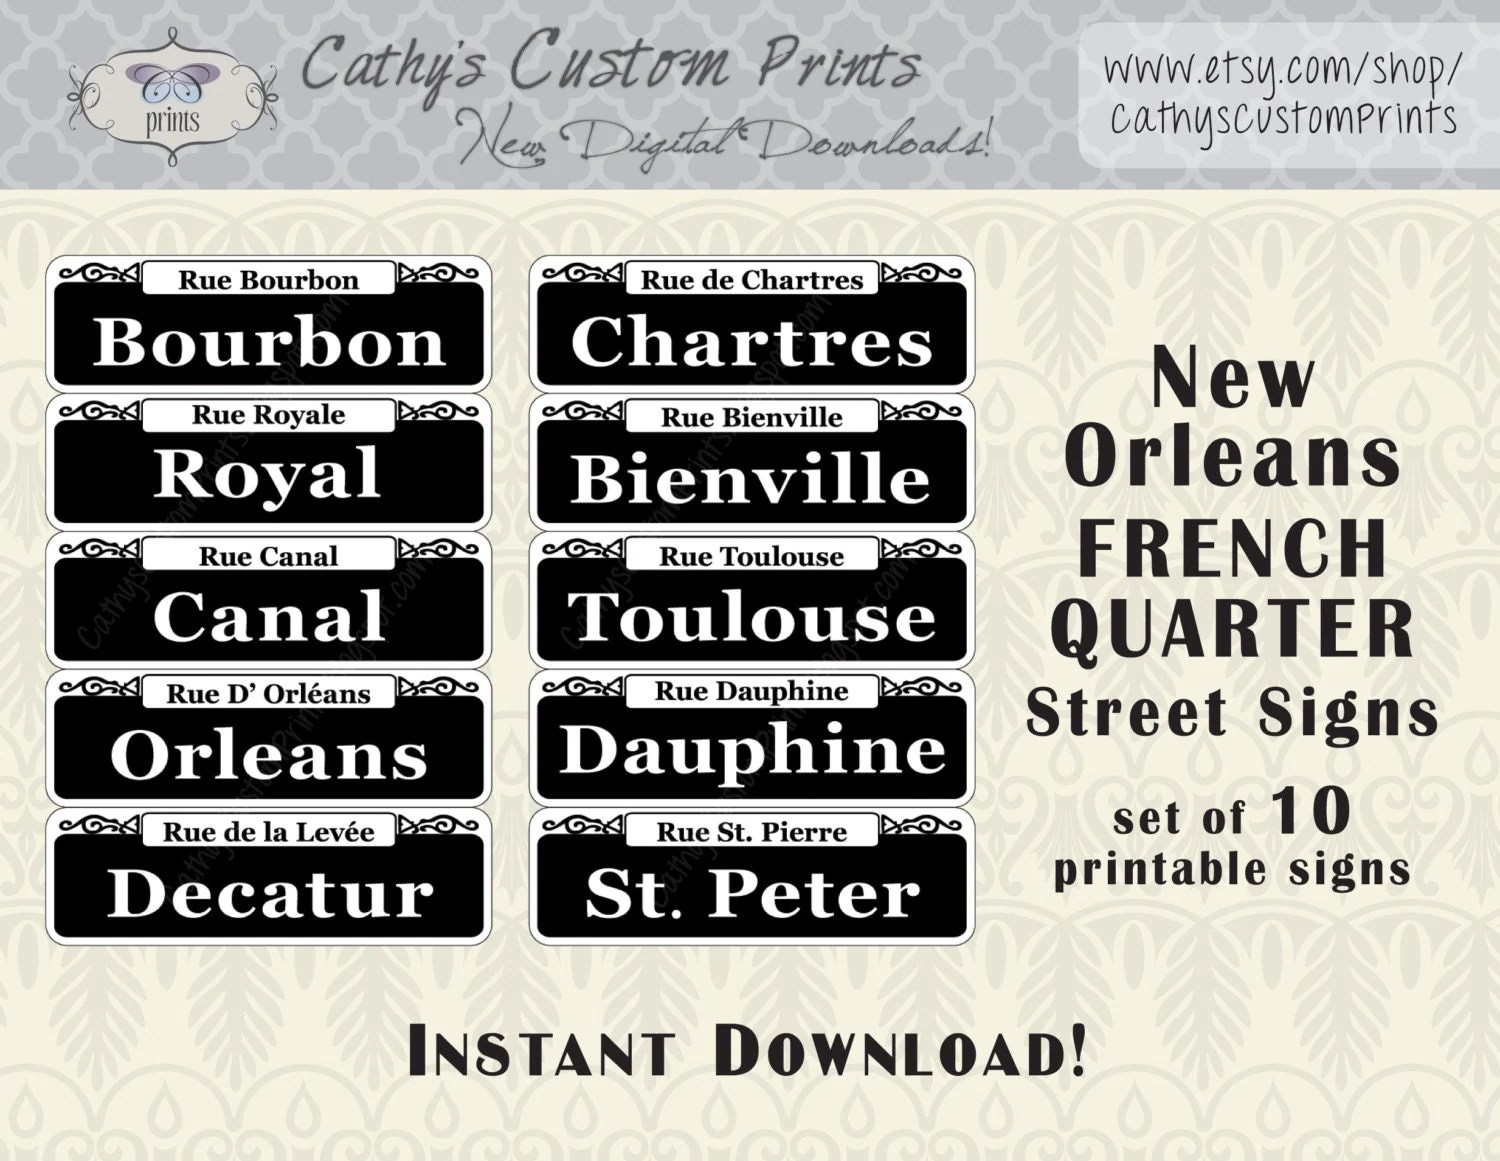 Mini New Orleans French Quarter Printable Signs Set Of 10